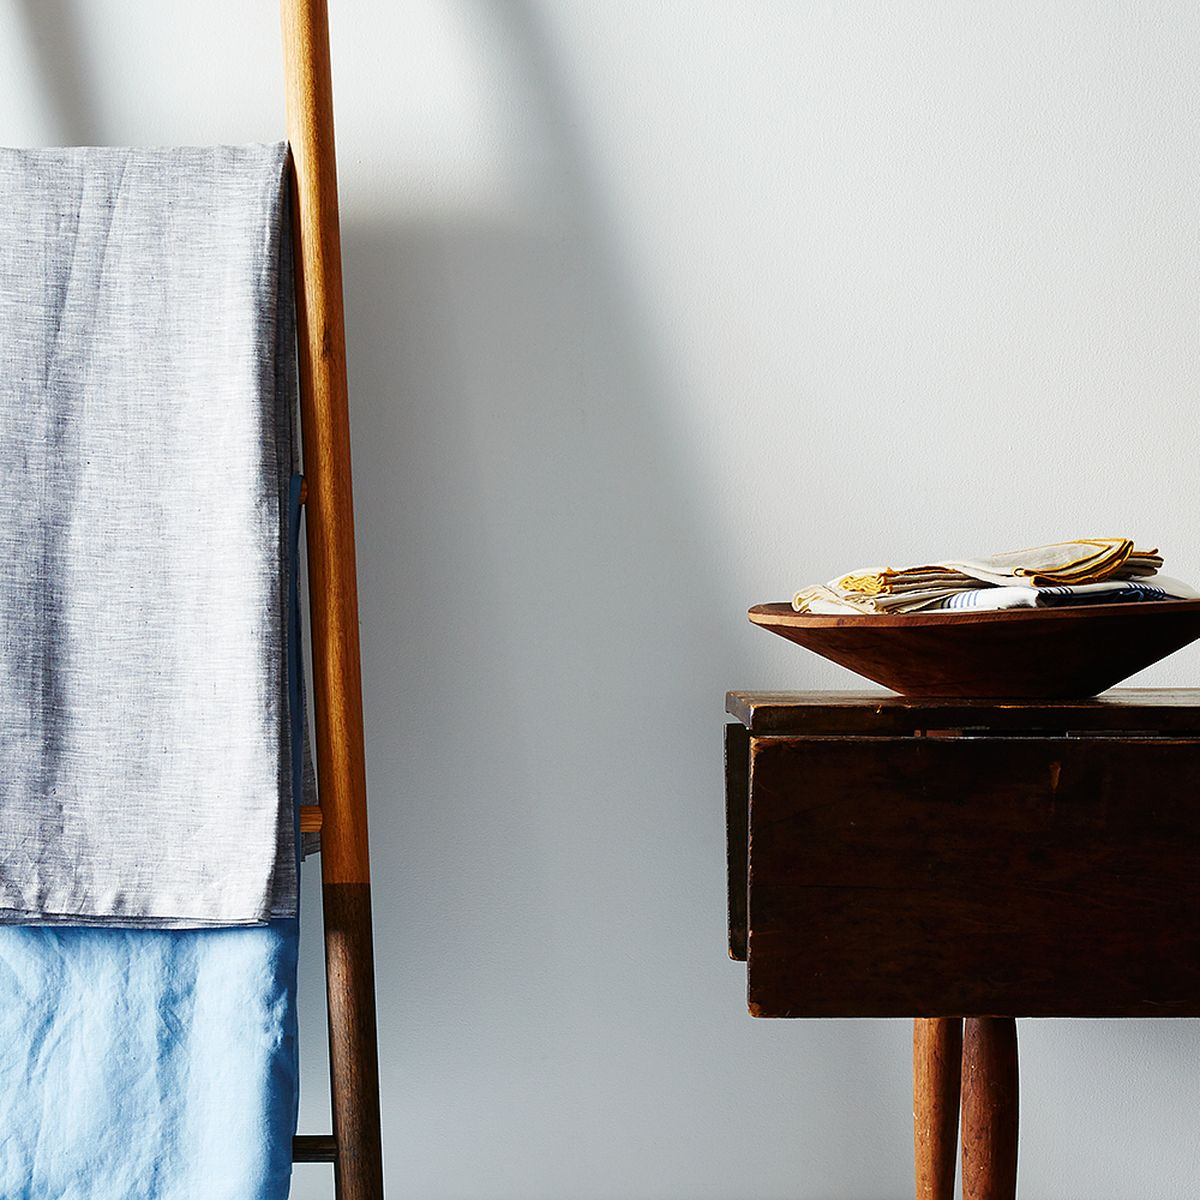 An Any Budget Guide To The Best Bath Towels On The Internet